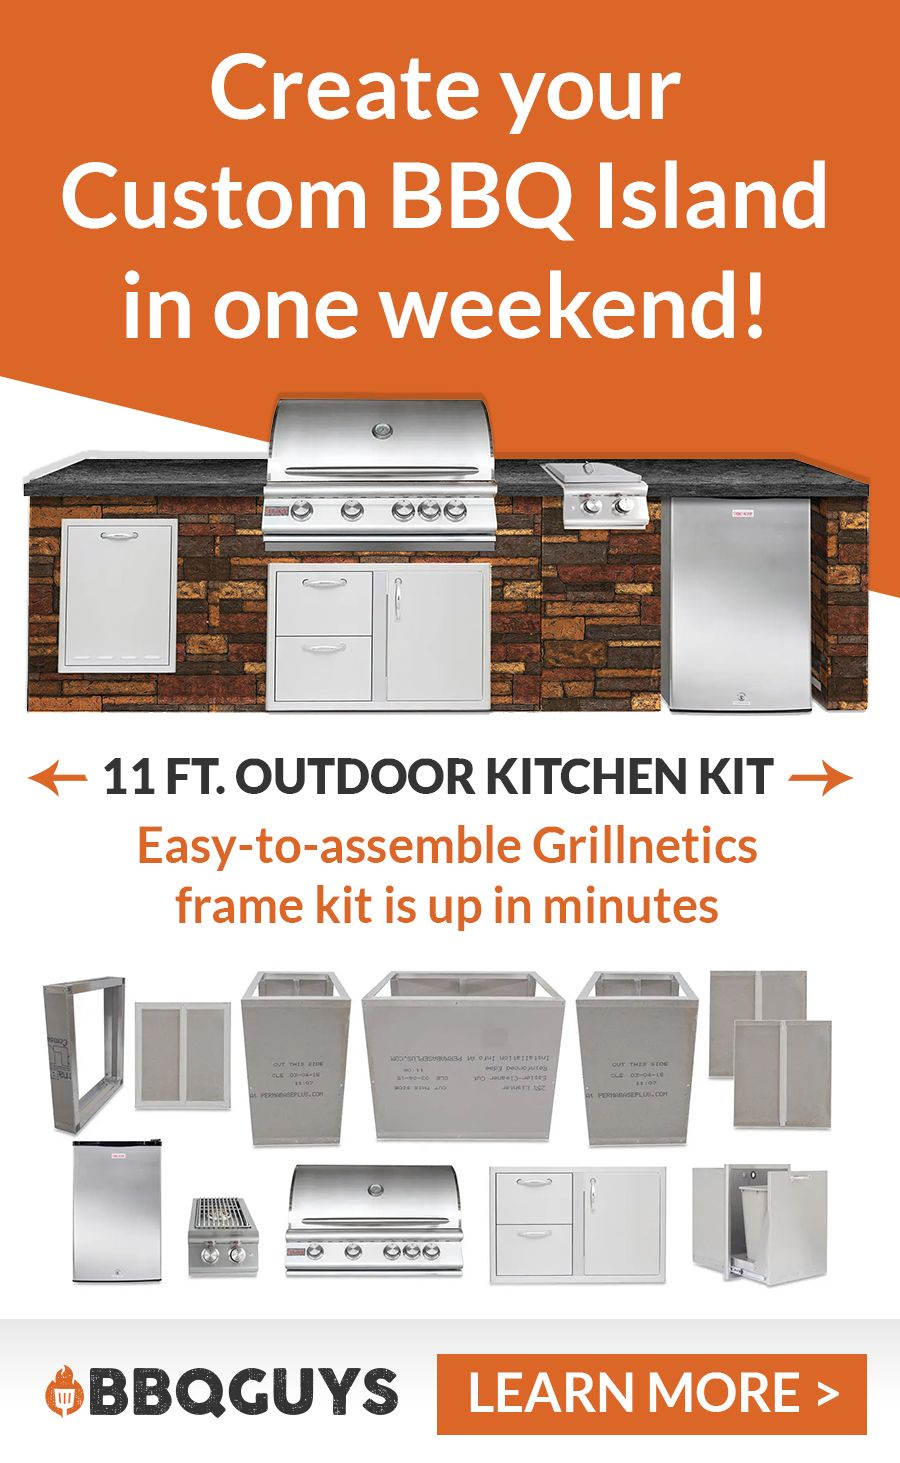 This 12 Piece Blaze And Grillnetics Bbq Island Outdoor Kitchen Package Has Everything You Need To Crea Outdoor Kitchen Kits Outdoor Kitchen Diy Outdoor Kitchen